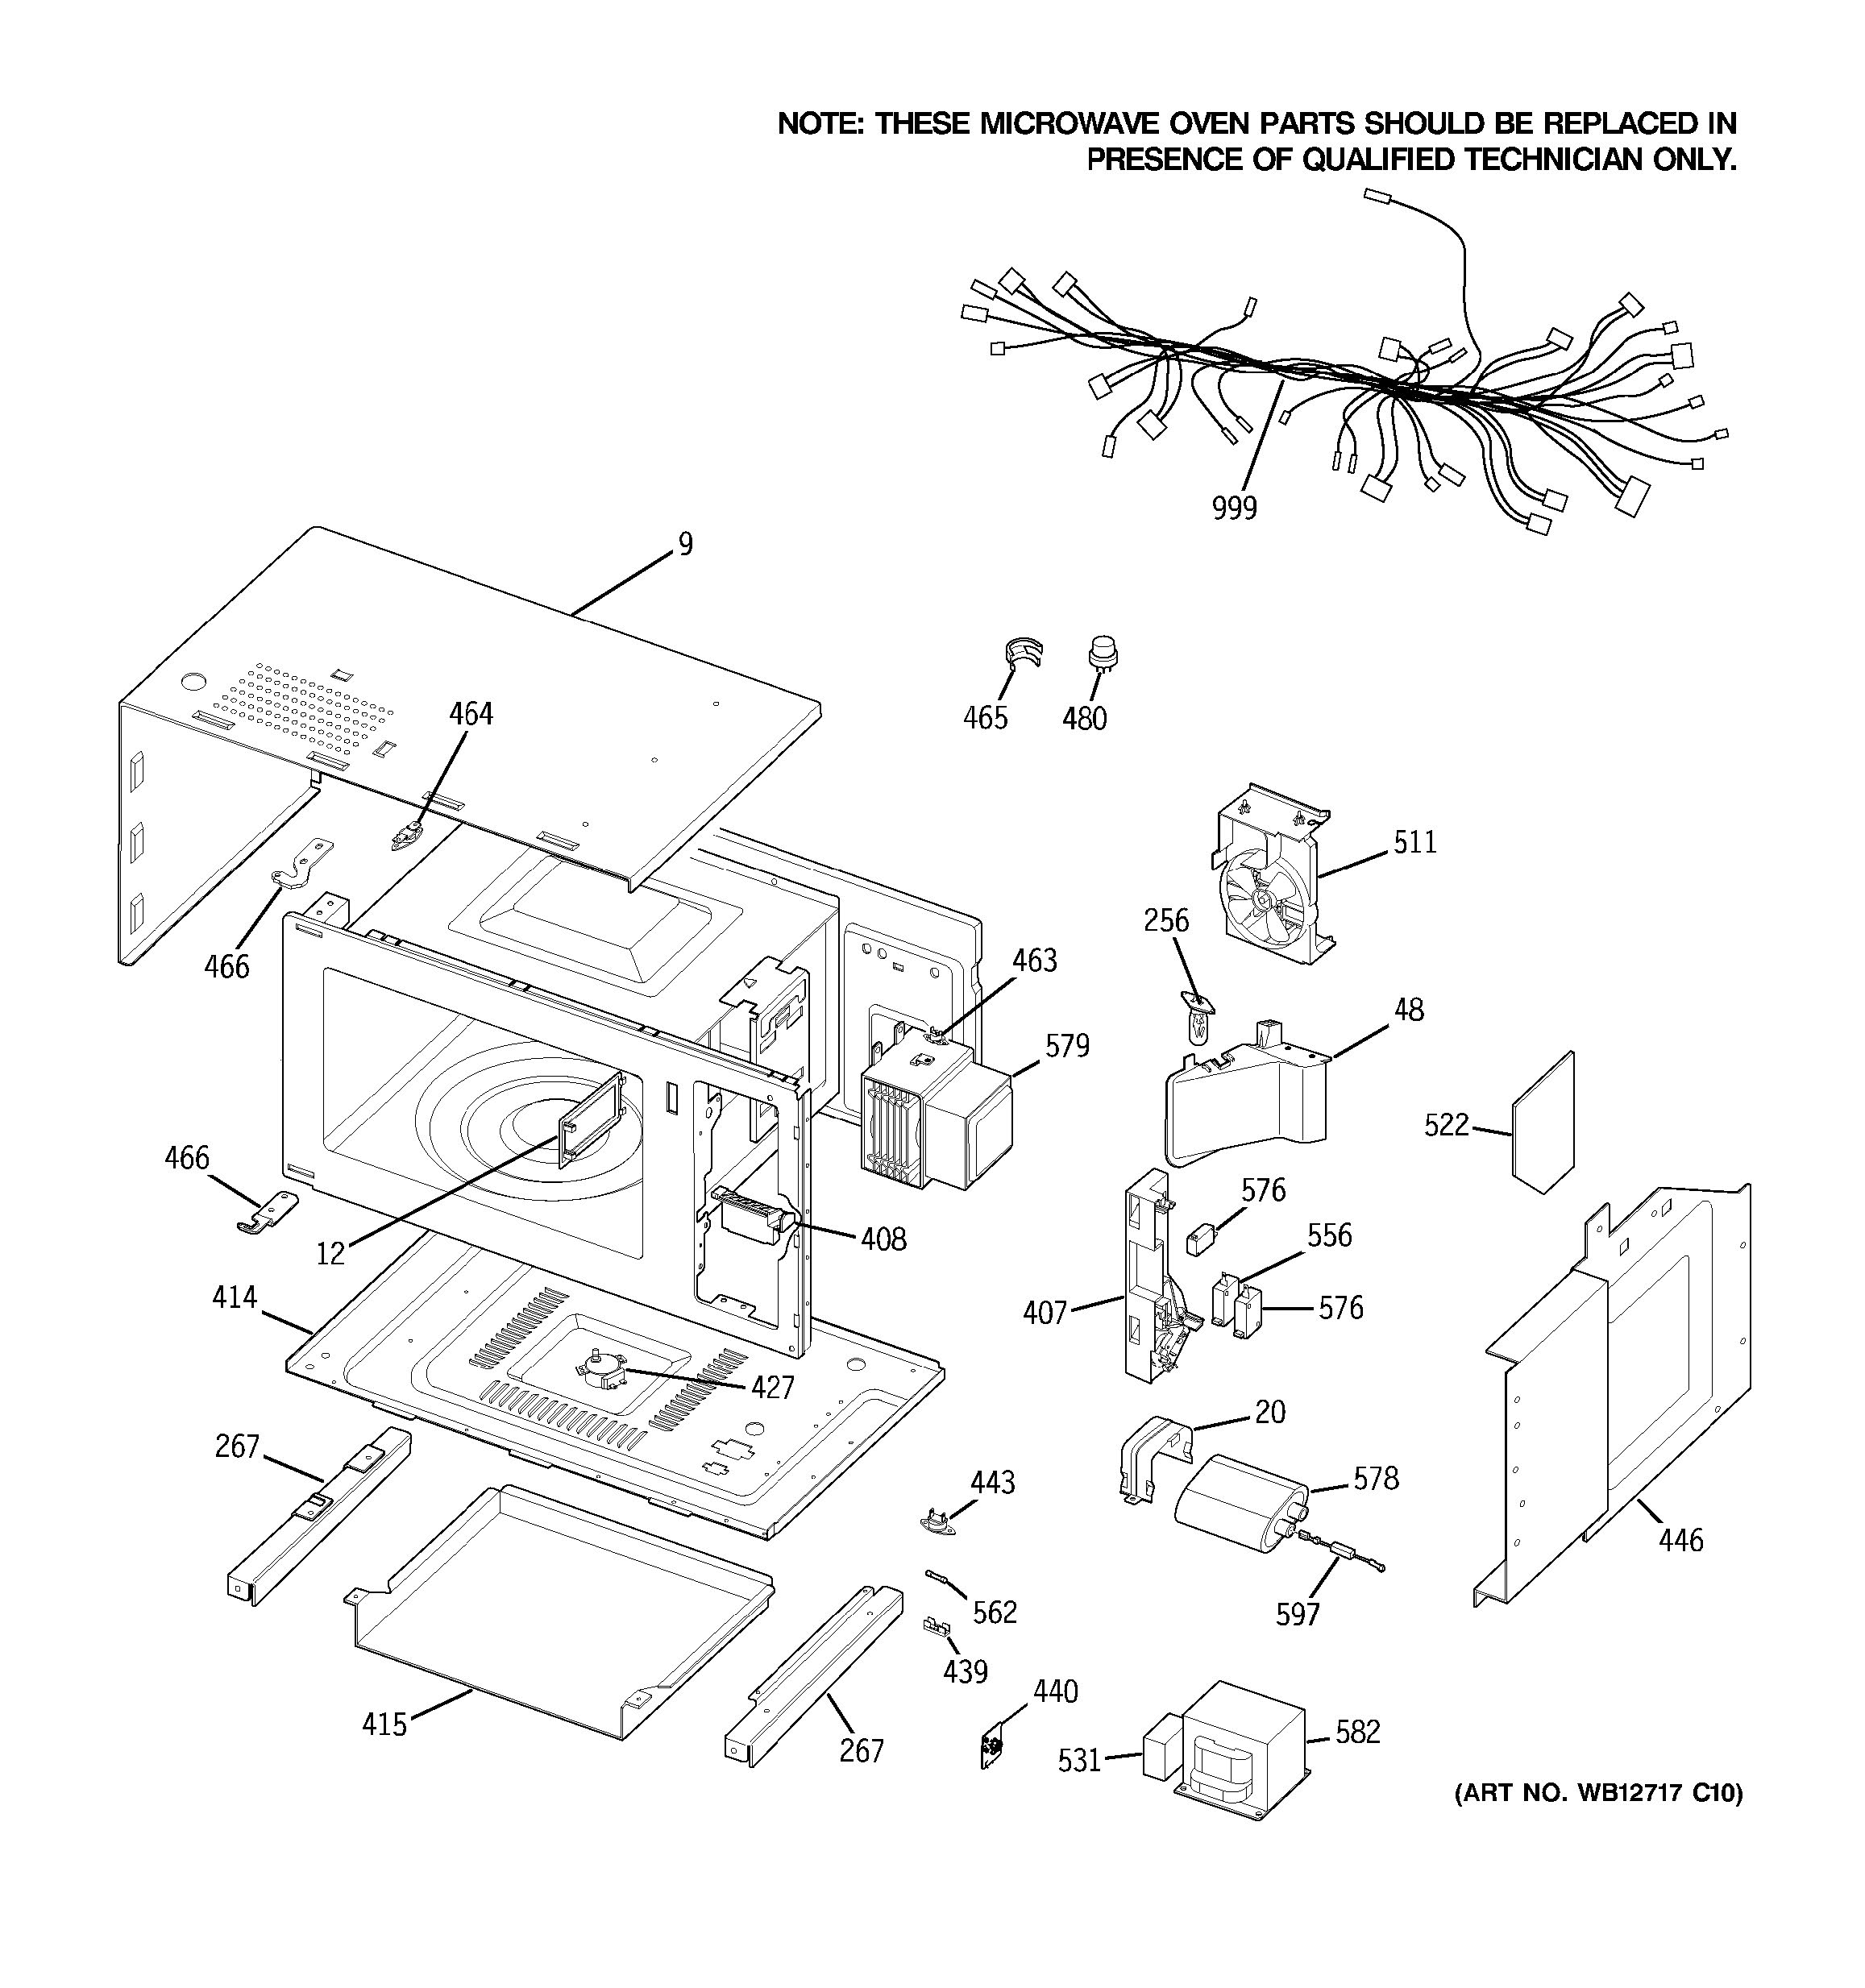 Assembly View For Microwave Body Parts